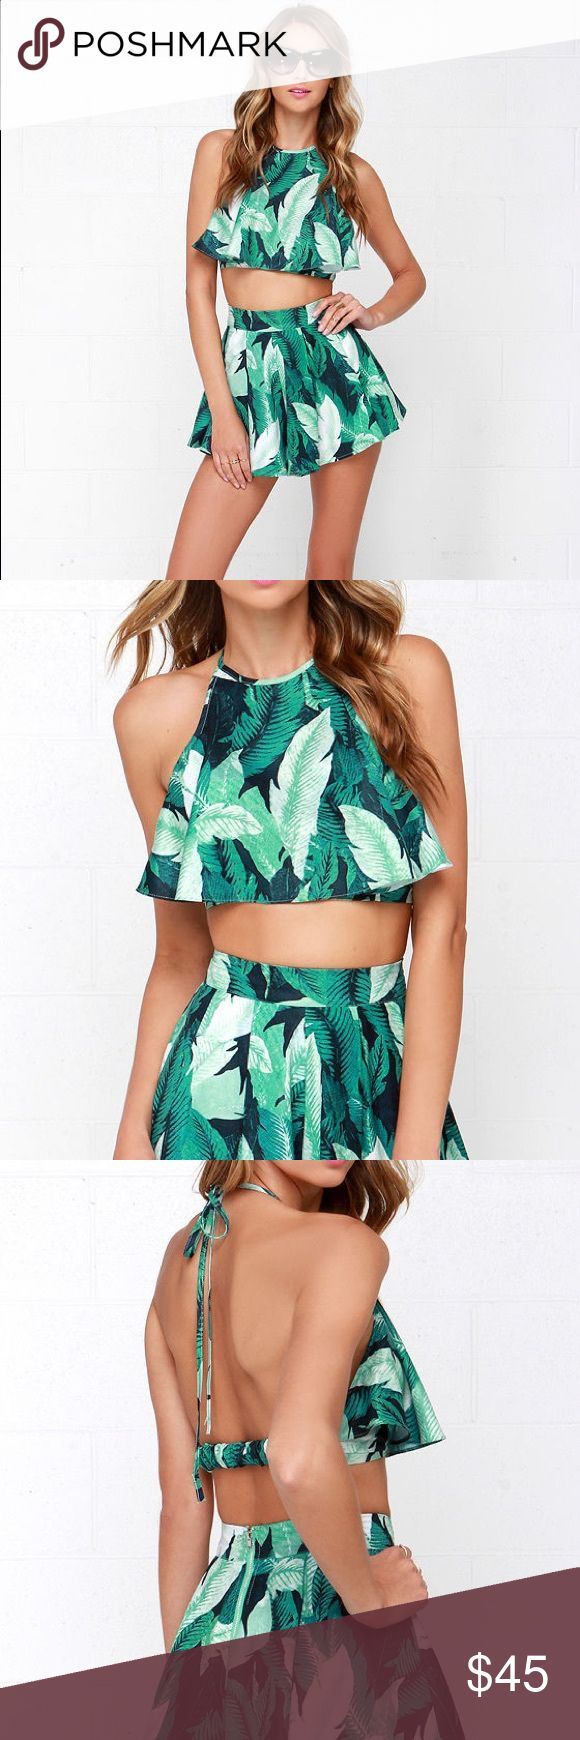 LEAF IT TO ME GREEN TROPICAL PRINT TWO-PIECE SET A vivid green tropical print covers the woven crop top of this flirty set, with a tying halter neckline, elasticized back strap, and a flouncy bodice. The matching shorty-shorts are topped with box pleats, and ruffle to a skirt-like finish. Shorts have exposed silver back zipper with clasp. This flirty and fun outfit is great for summer days, beach vacations, going out and honestly any other type of occasion! Lulu's Other